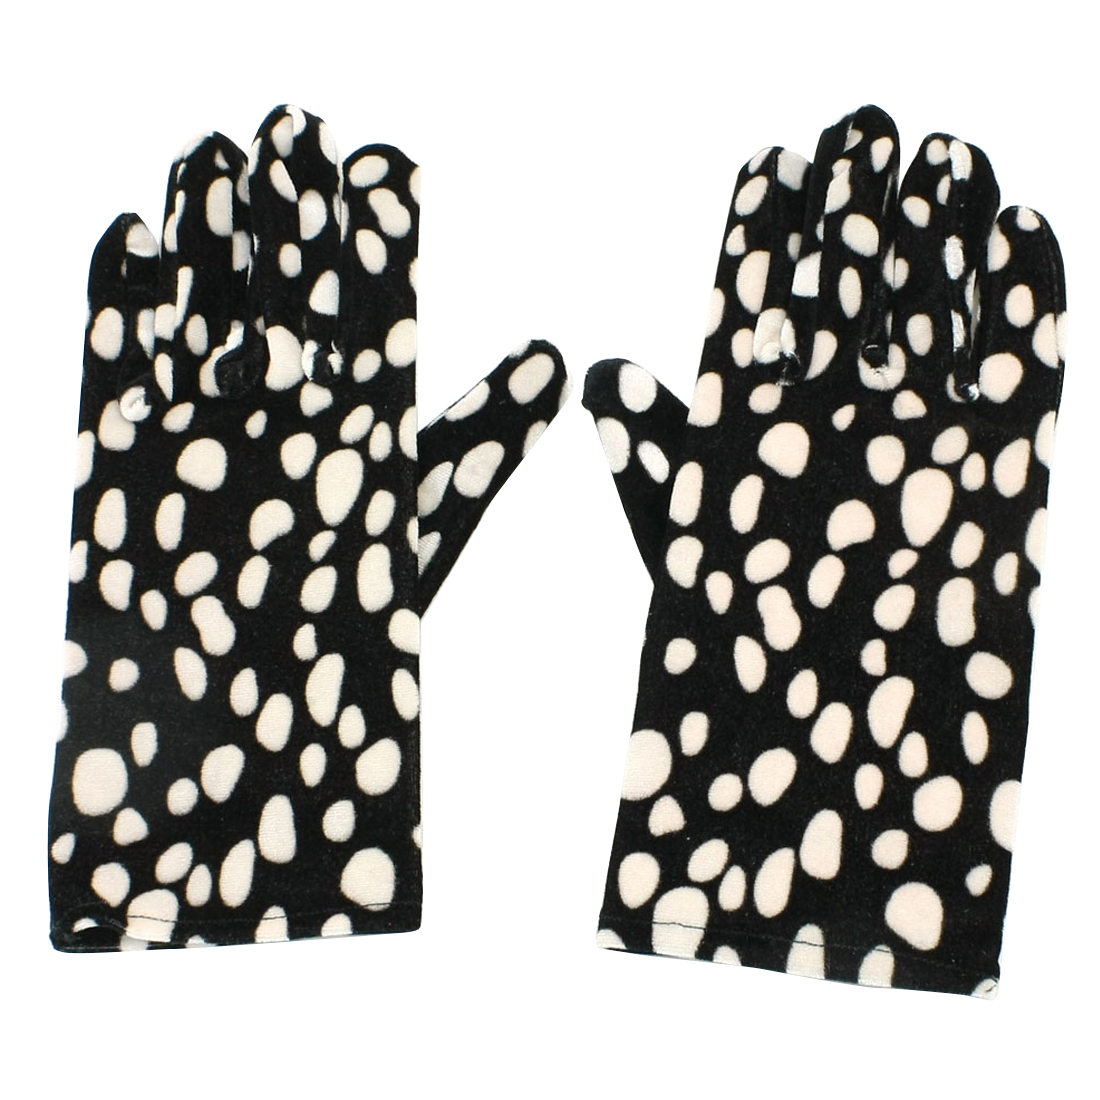 Lady Beige Footprint Prints Full Fingers Winter Warm Gloves Black Pair